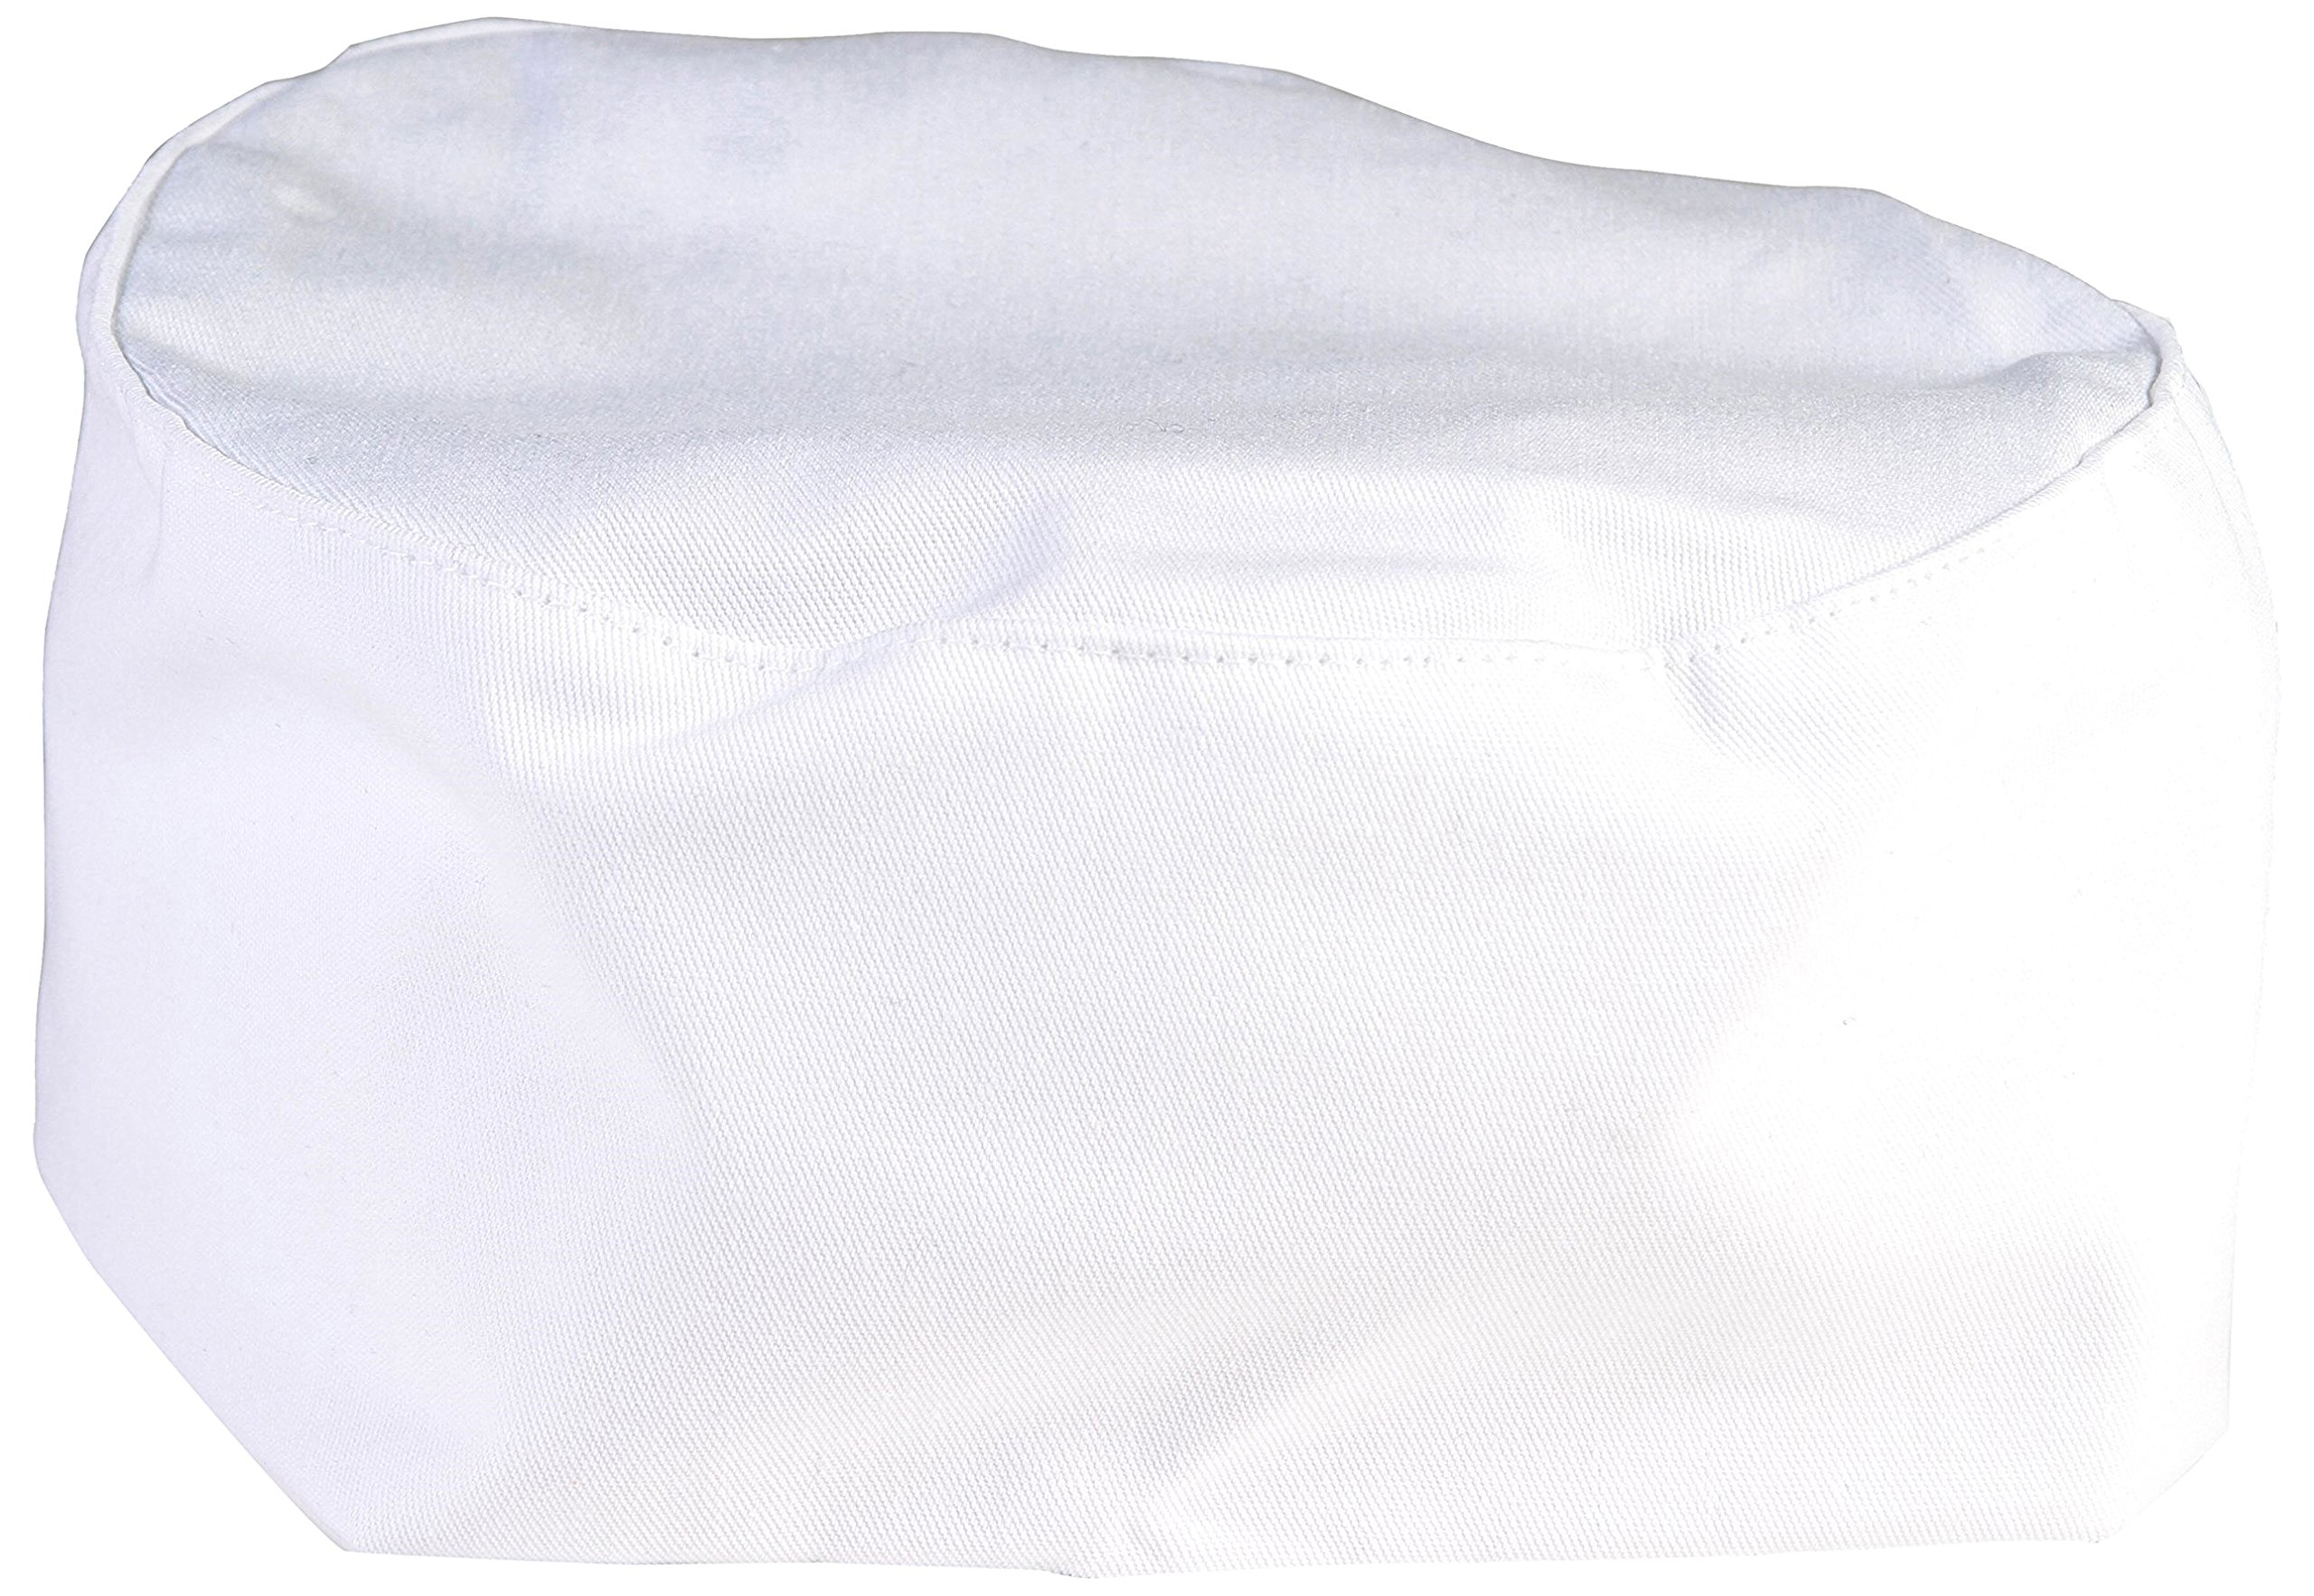 Mercer Culinary M60075WH1X Baker's Skull Cap with No Mesh, X-Large, White